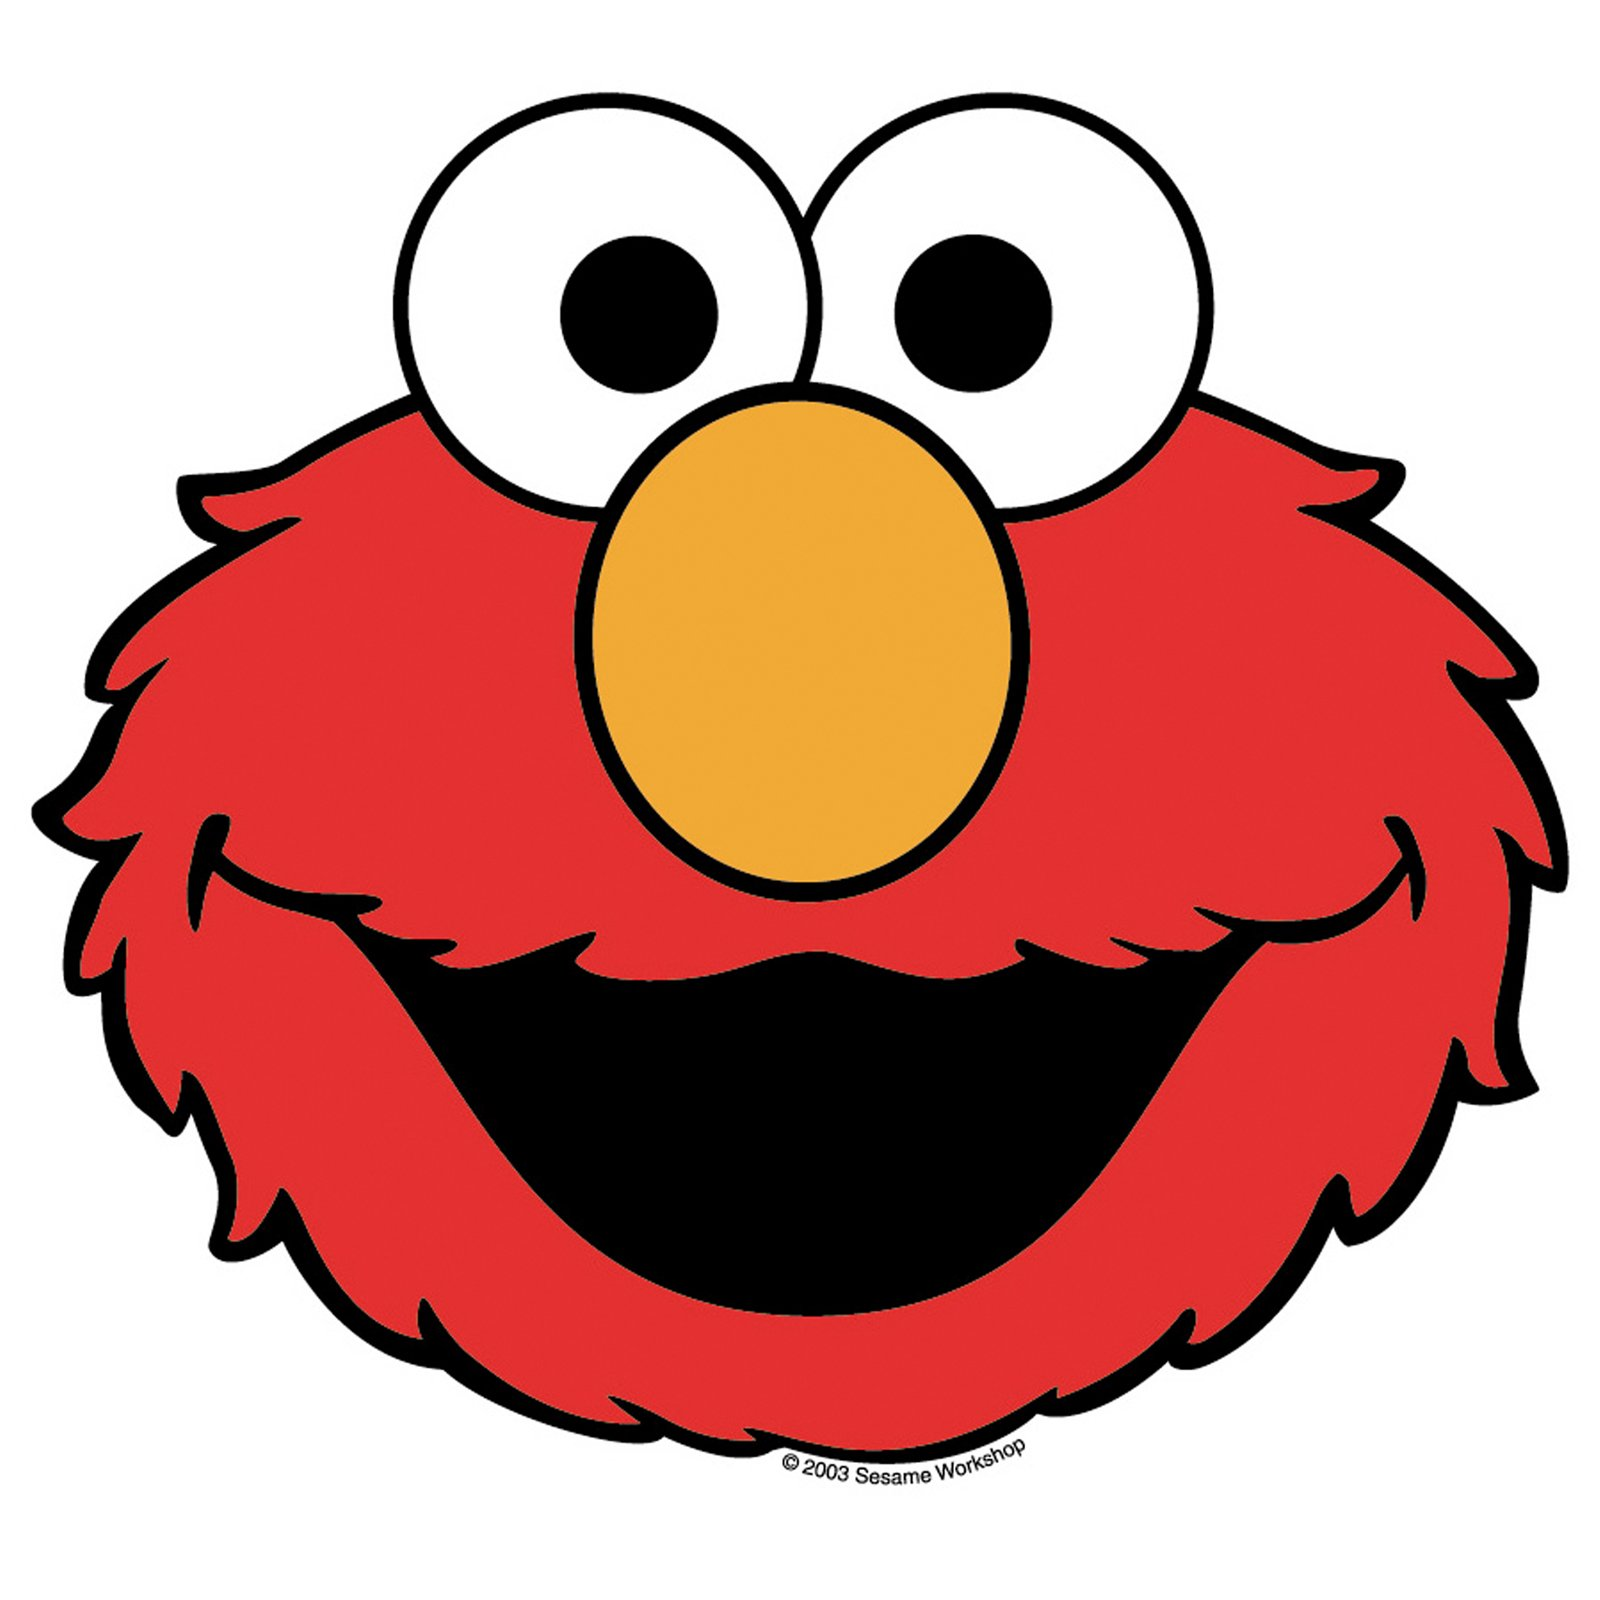 elmo face It gave all the rights and responsibilities of marriage to both same sex and ...